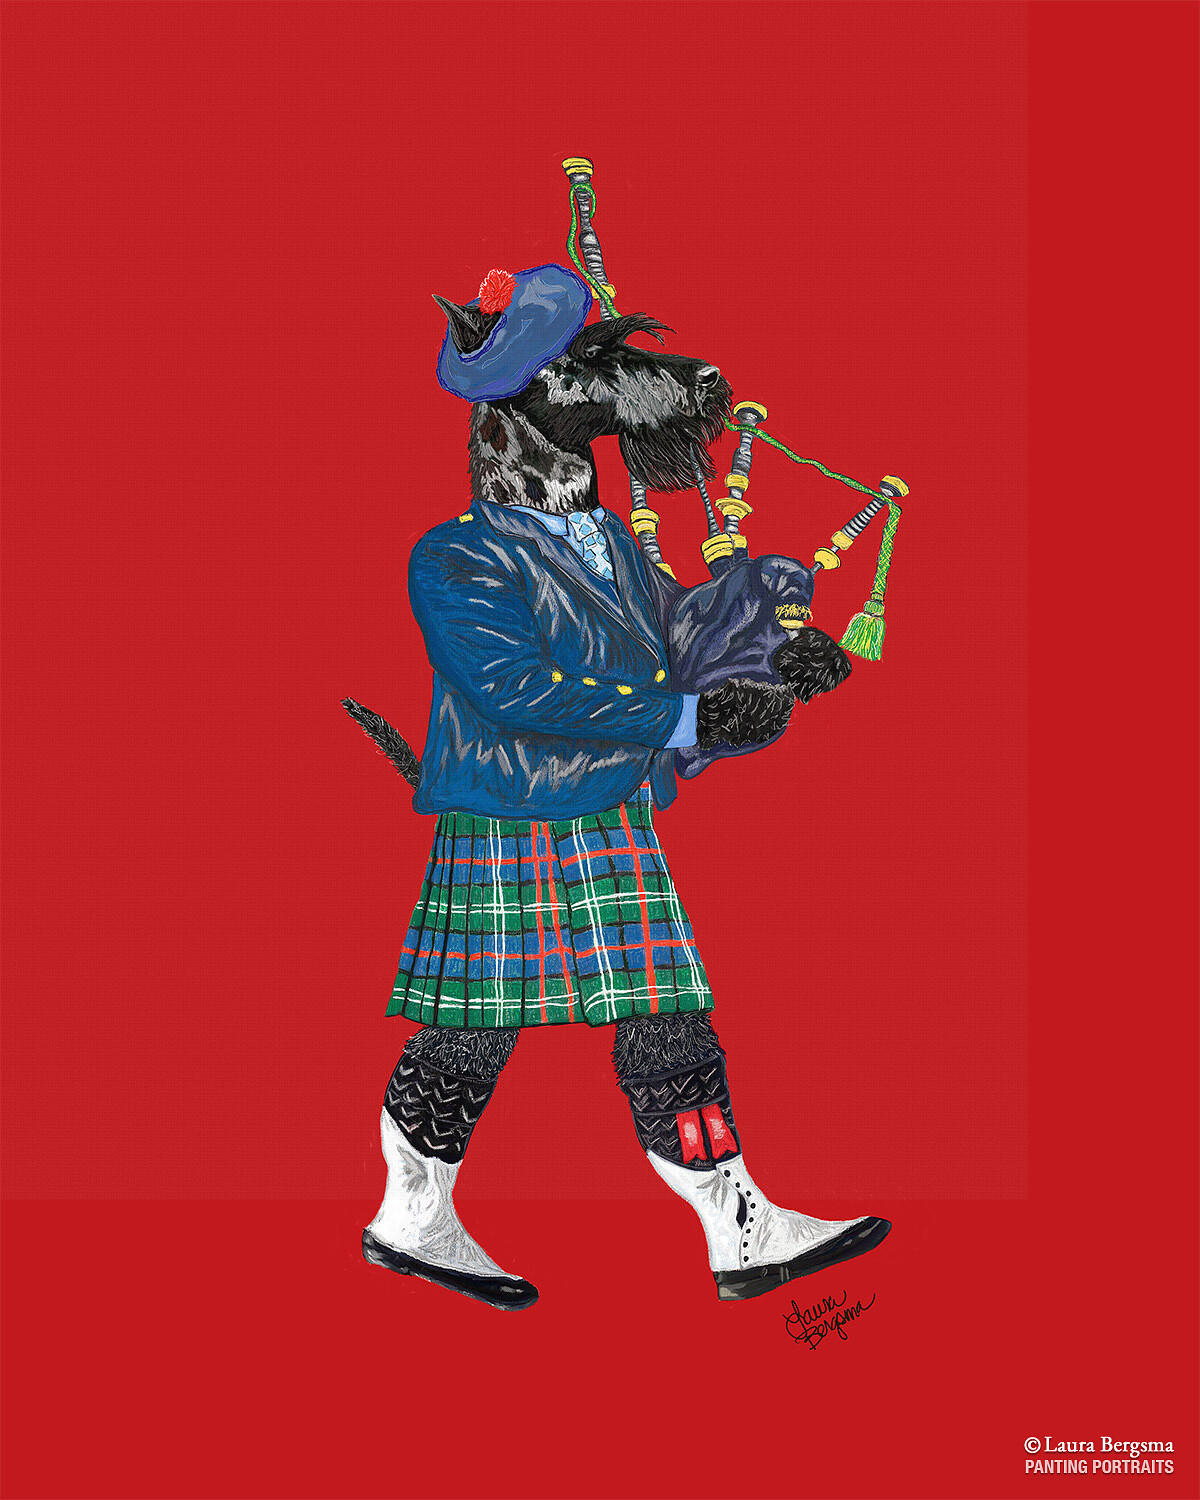 Scottish Terrier / Scotty Dog playing The Bagpipes